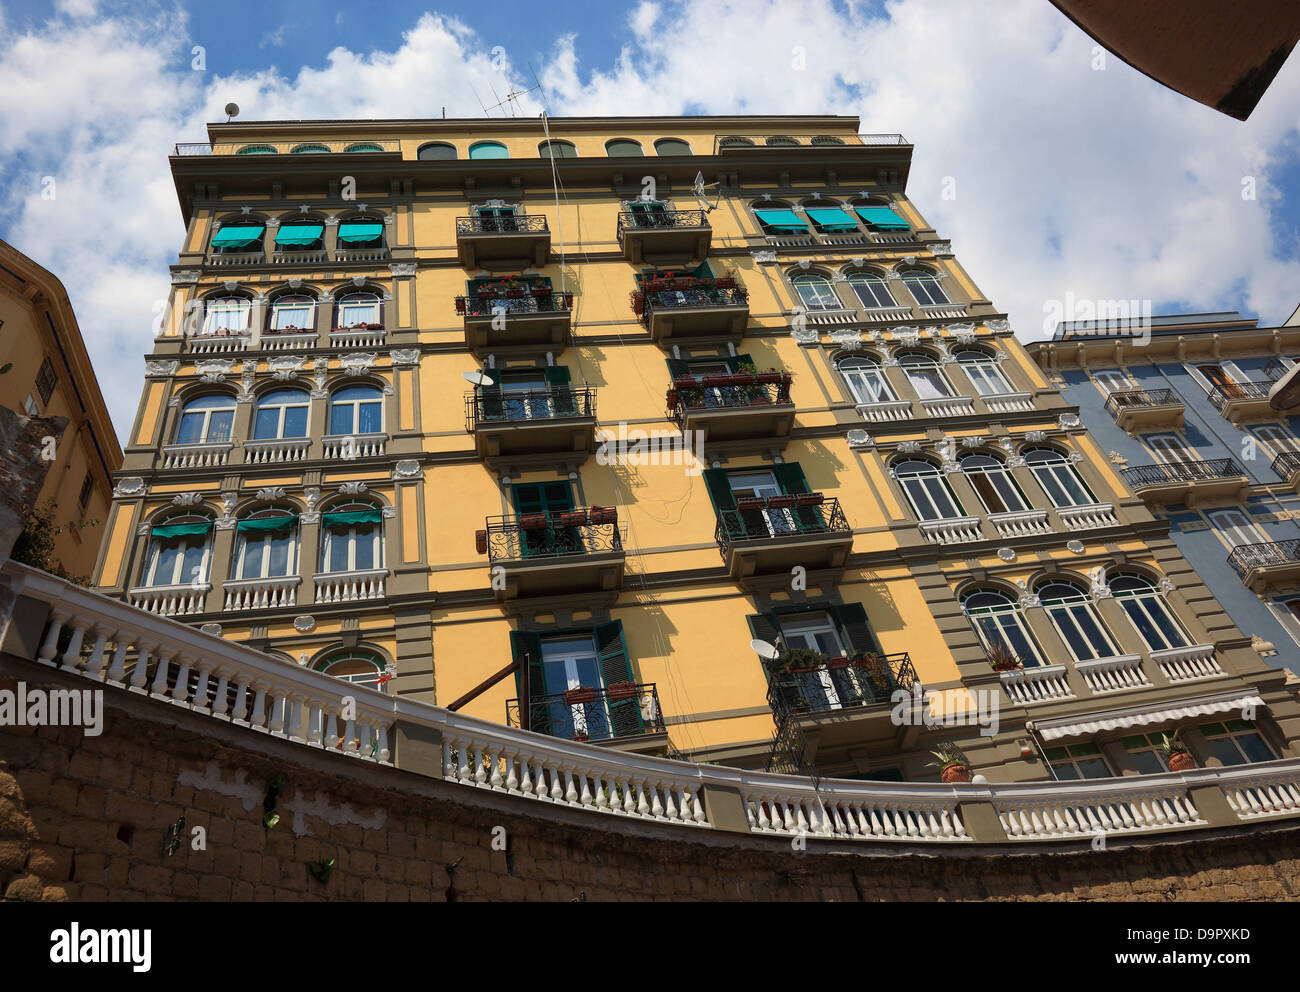 House in Posillipo district, one of the prosperous areas, Naples, Campania, Italy - Stock Image